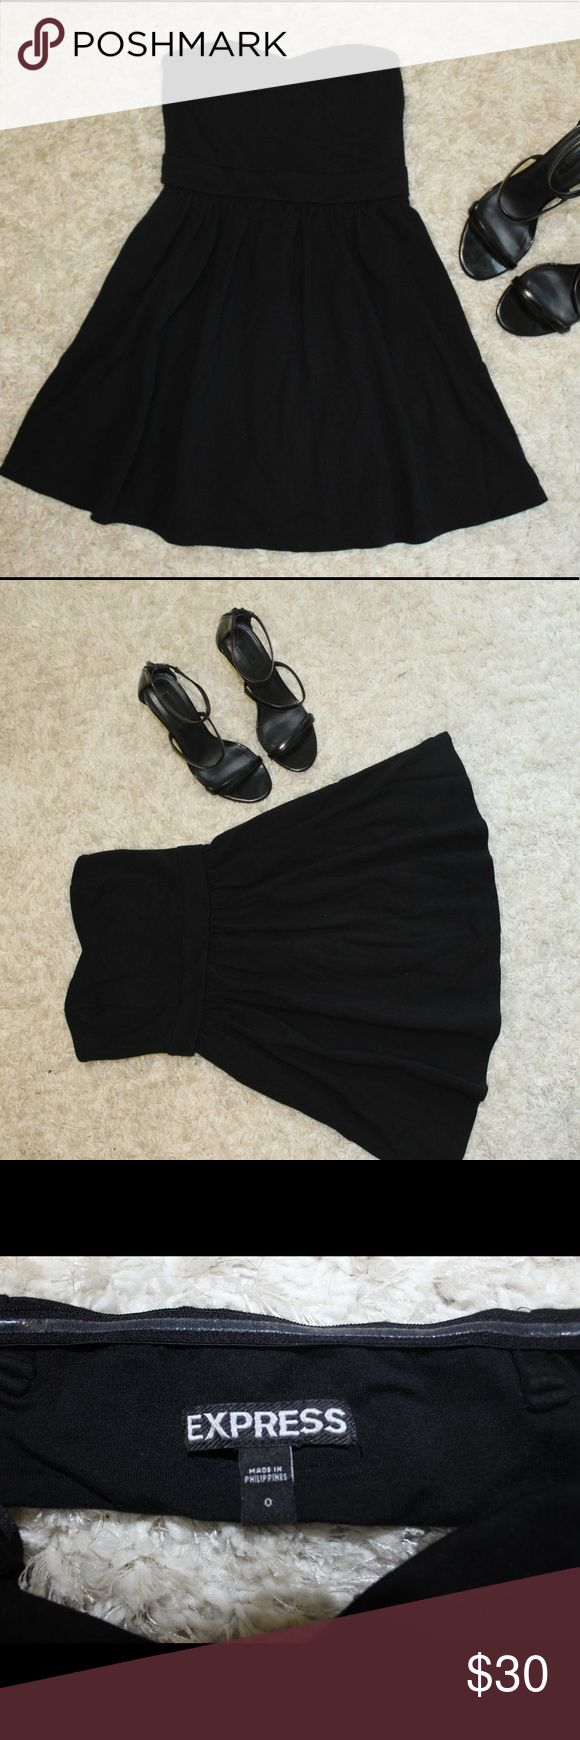 Express black strapless dress size 0 Express strapless black dress size 0. Only worn a few times and is gently used! Also selling the heels seen with it too, so bundling them is an option! Express Dresses Strapless